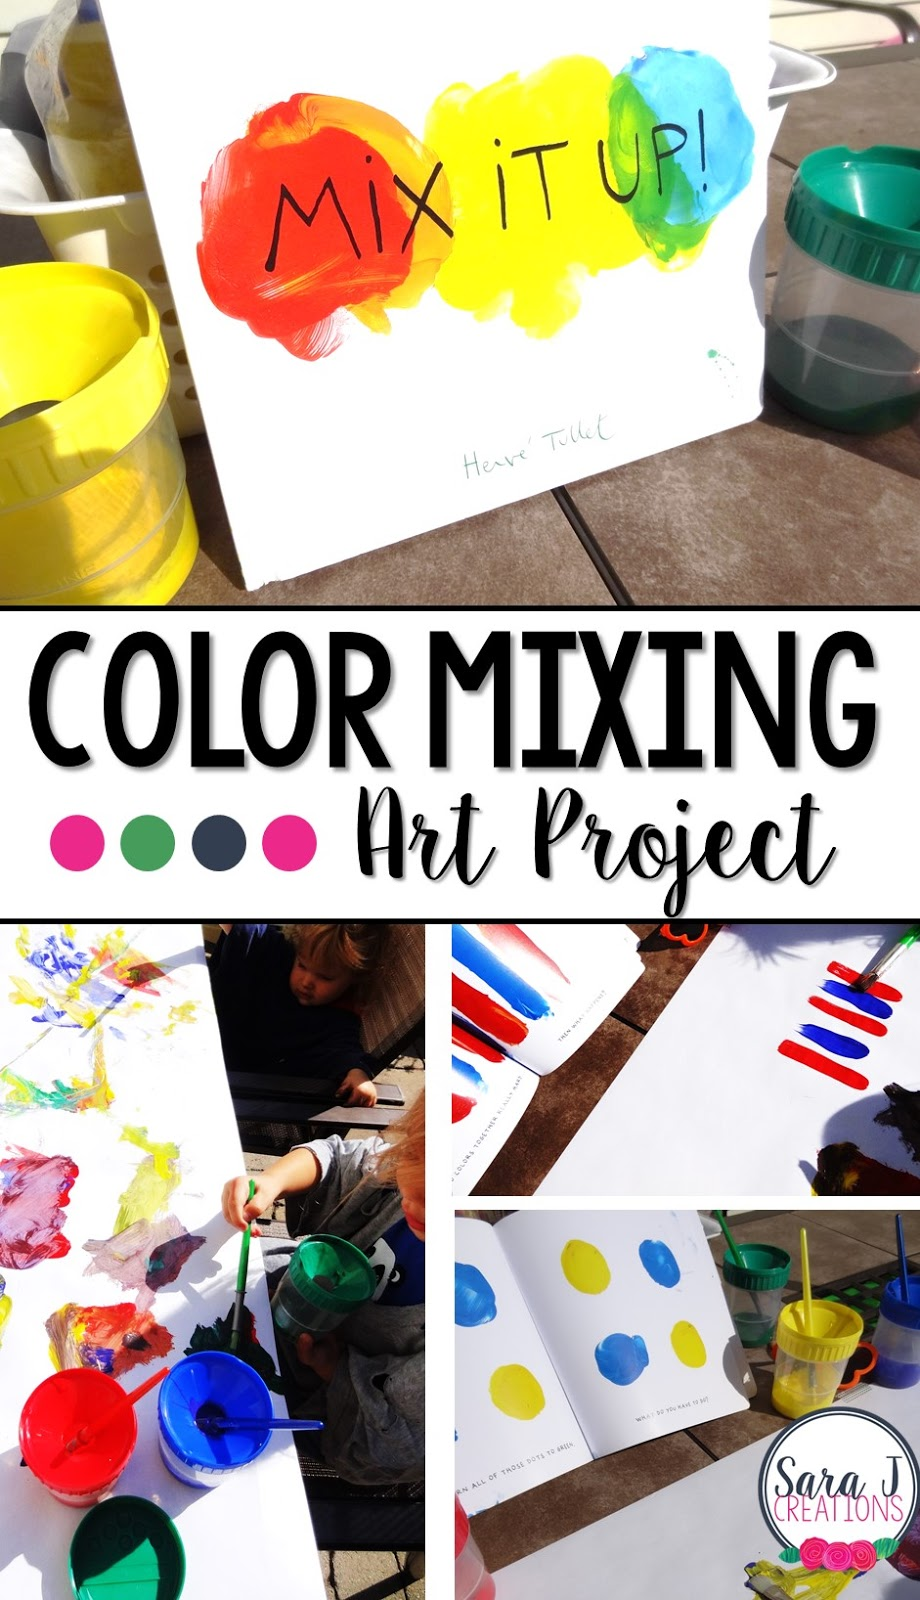 Have you read this book?  I love it for doing color mixing art activities with my toddlers.